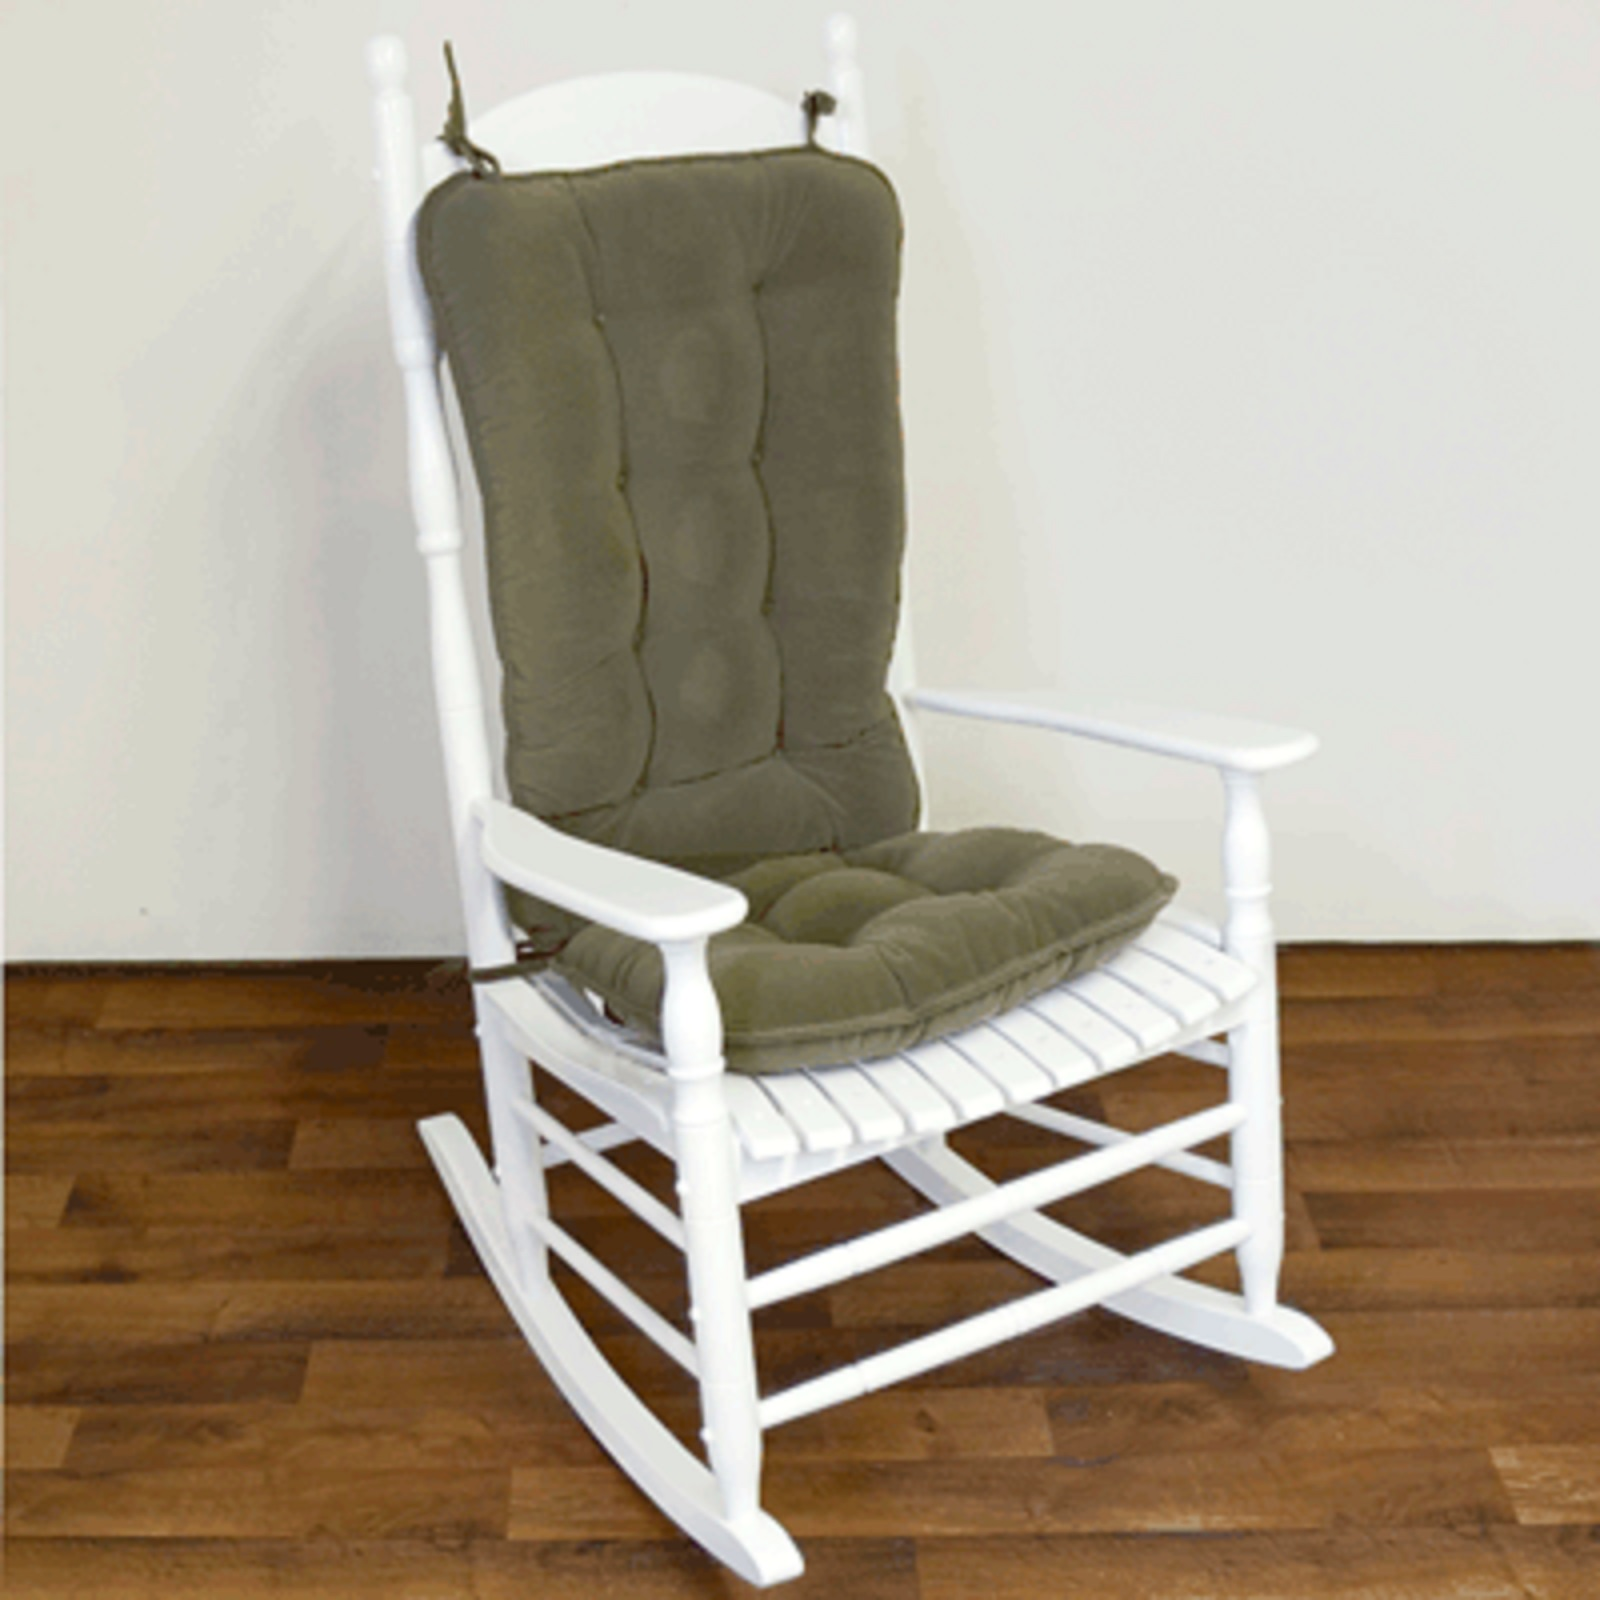 oversized rocking chair cushions lawn folding pads buy in home at kmart